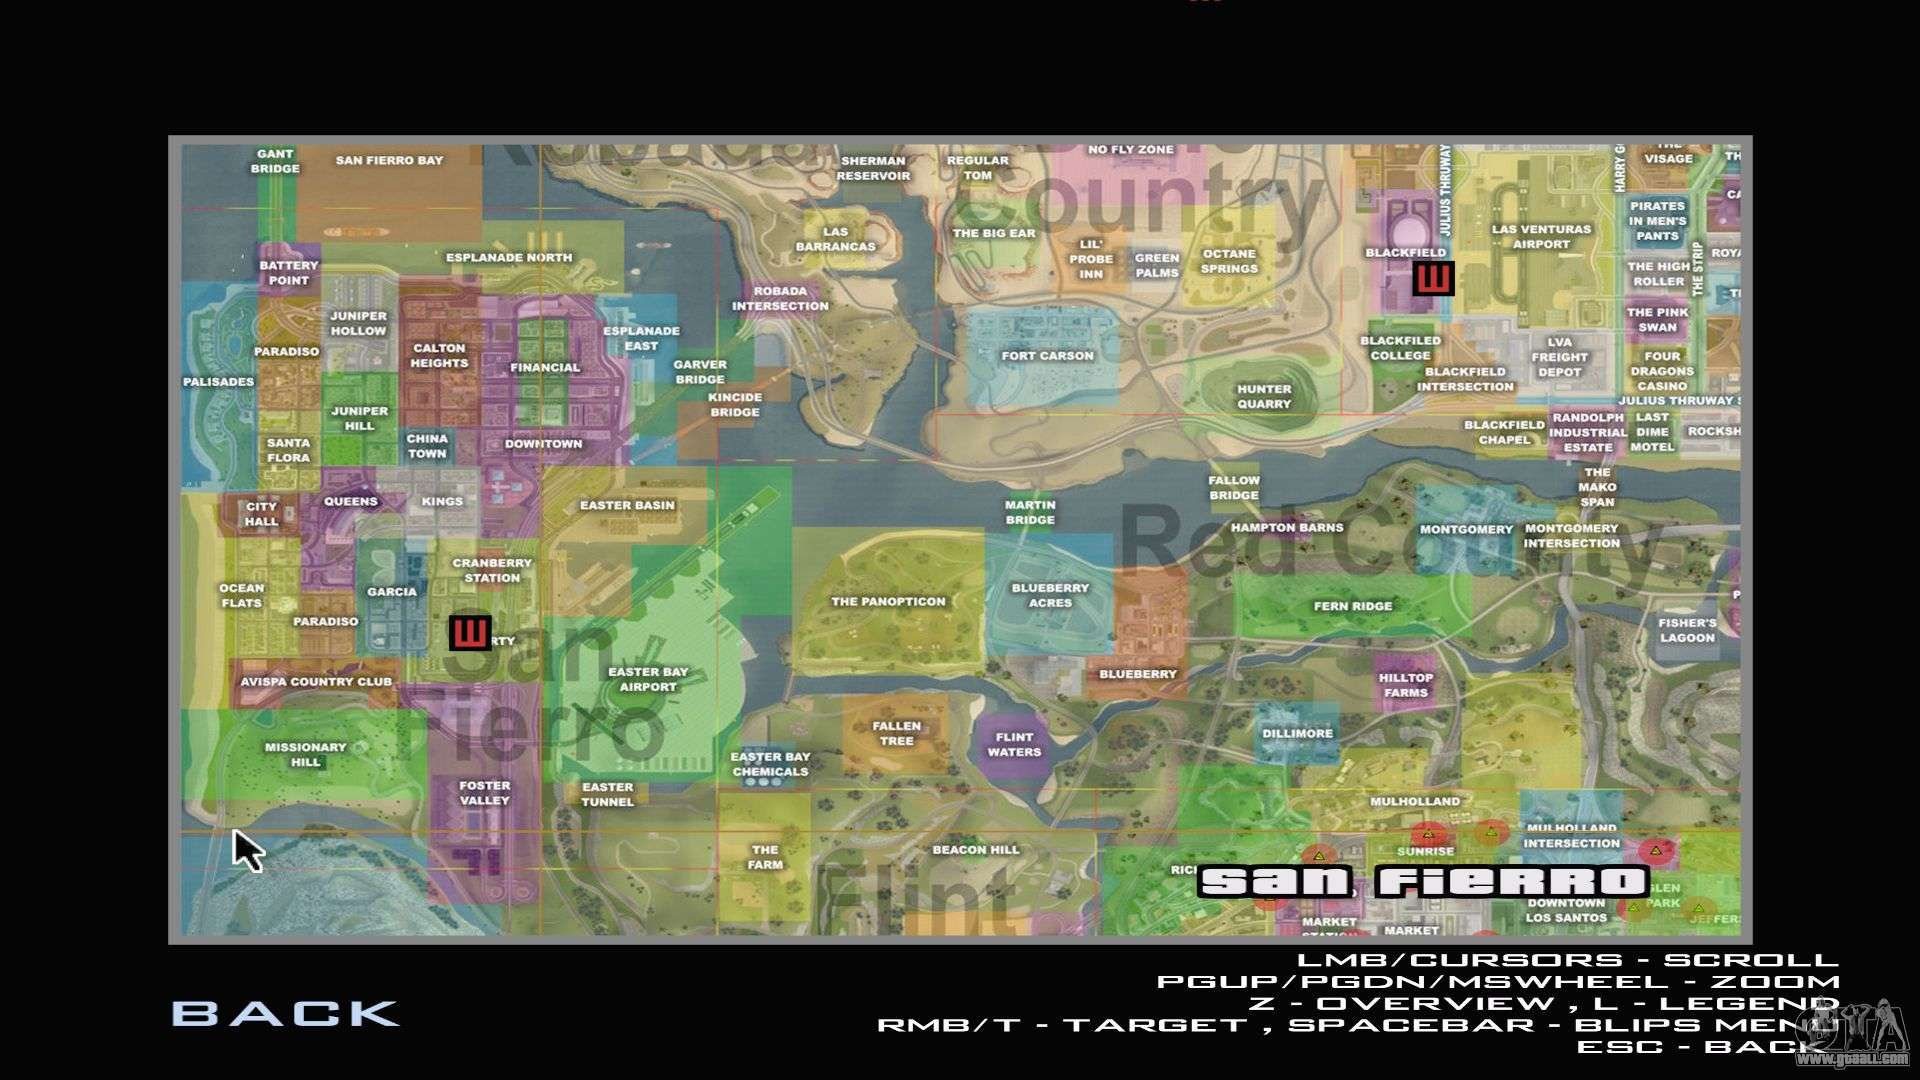 G-Solr LSRP Detailed Map Radar for GTA San Andreas on gta 4 map, vice city map, andreas fault map, san miguel map, west coast fault line map, doom map, san andres map, gta 2 map, san gorgonio map, gta 5 grove street map, san lorenzo valley map, liberty city map, gta 1 map, gta 3 map, calaveras county map, saints row map, gta v map, the golden compass map, city of san antonio map, grand theft auto iv map,